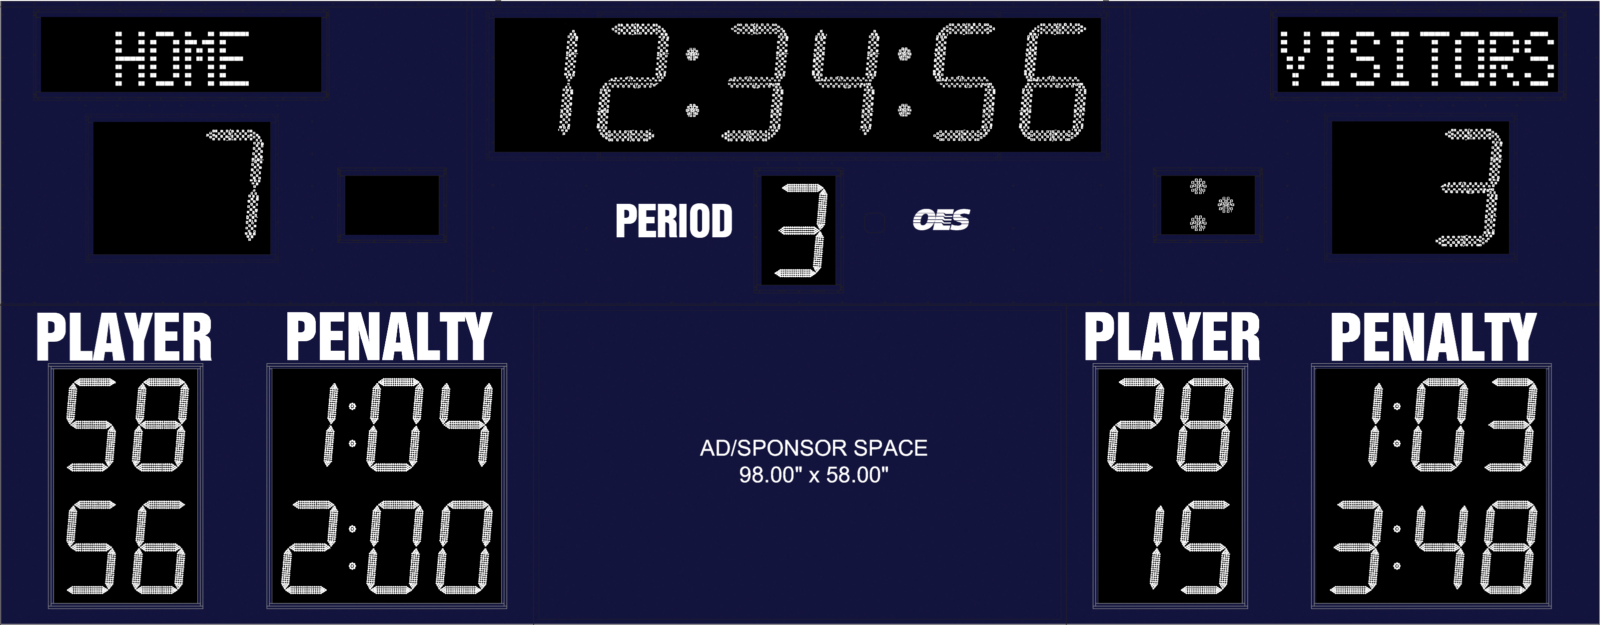 blue scoreboard with ad space